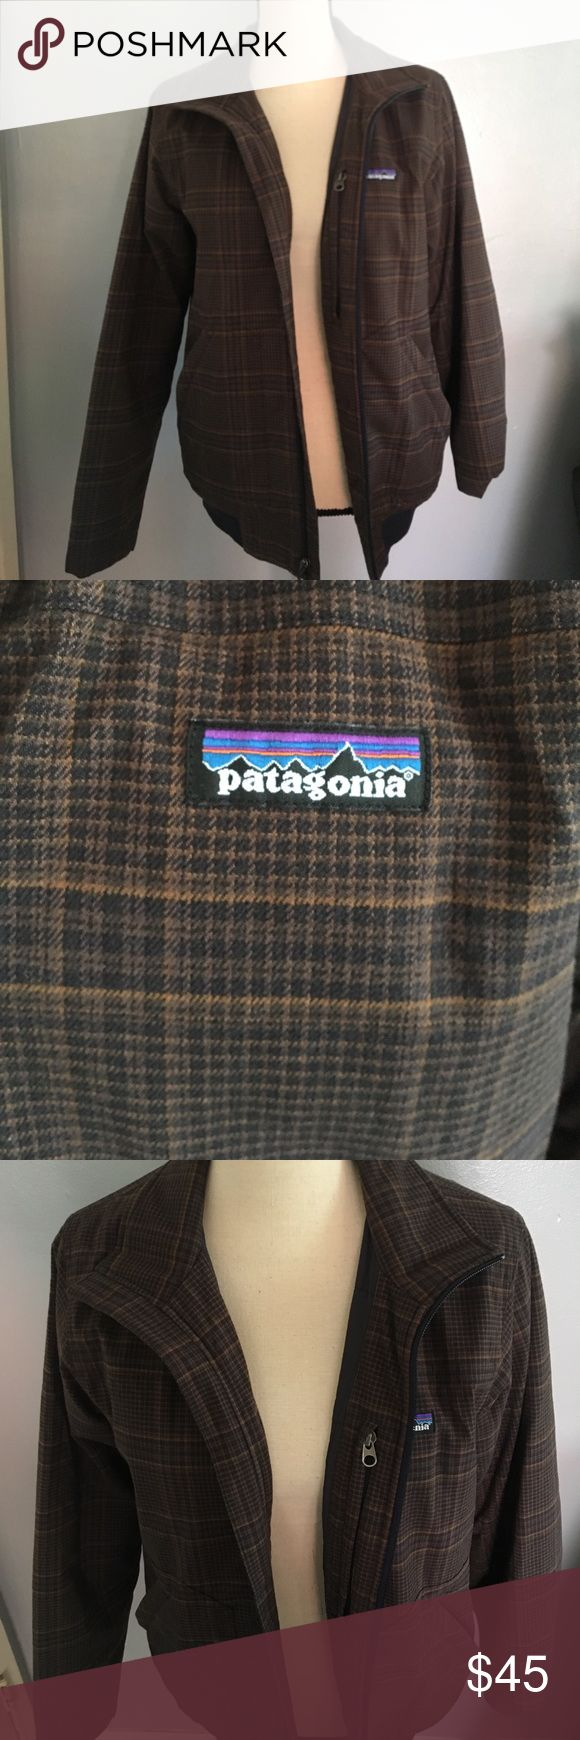 Patagonia men's jacket! XS! Patagonia men's jacket! Fully lined on the inside. Pocket with zipper on the inside and pockets with zippers on the outside as well! Clean and ready to ship! Ships within 24hrs unless otherwise stated.😌 like more than one item!? bundle for an exclusive offer! 🤗 Patagonia Jackets & Coats